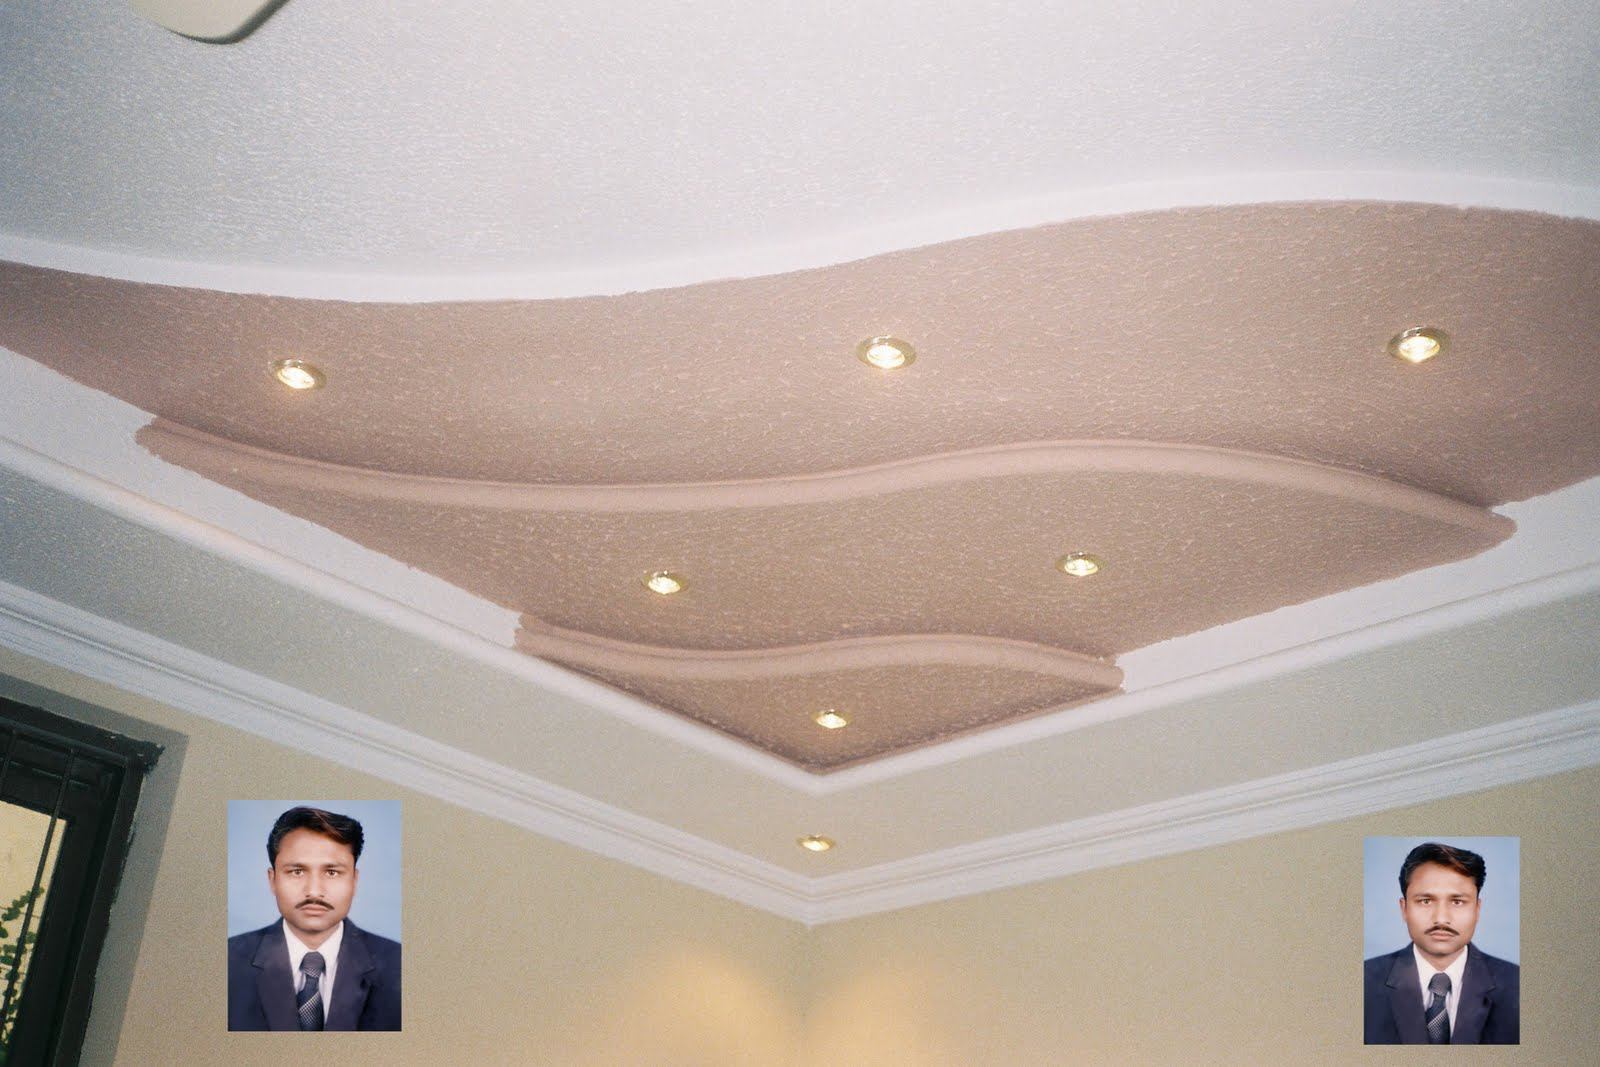 Plaster of paris ceiling designs pictures in india joy for Plaster of paris ceiling designs for living room